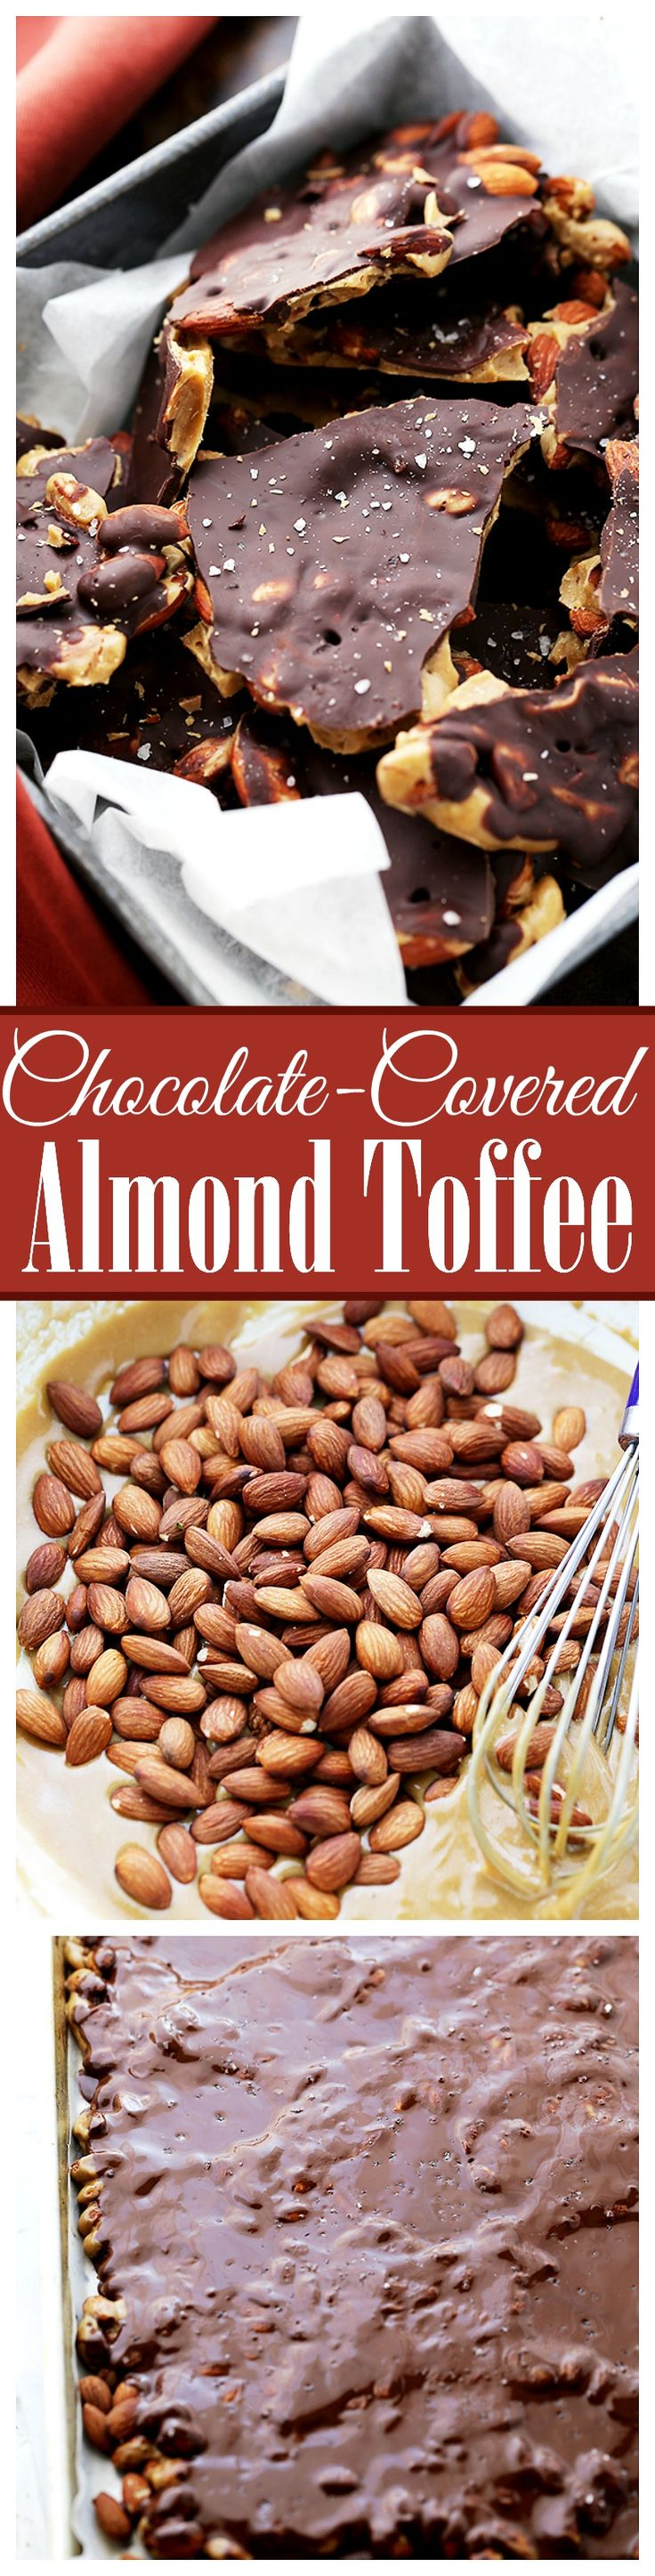 Chocolate Covered Almond Toffee - Made with light brown sugar, dark chocolate and toasted almonds, this toffee recipe results in a deep flavored, crunchy, and delicious treat!